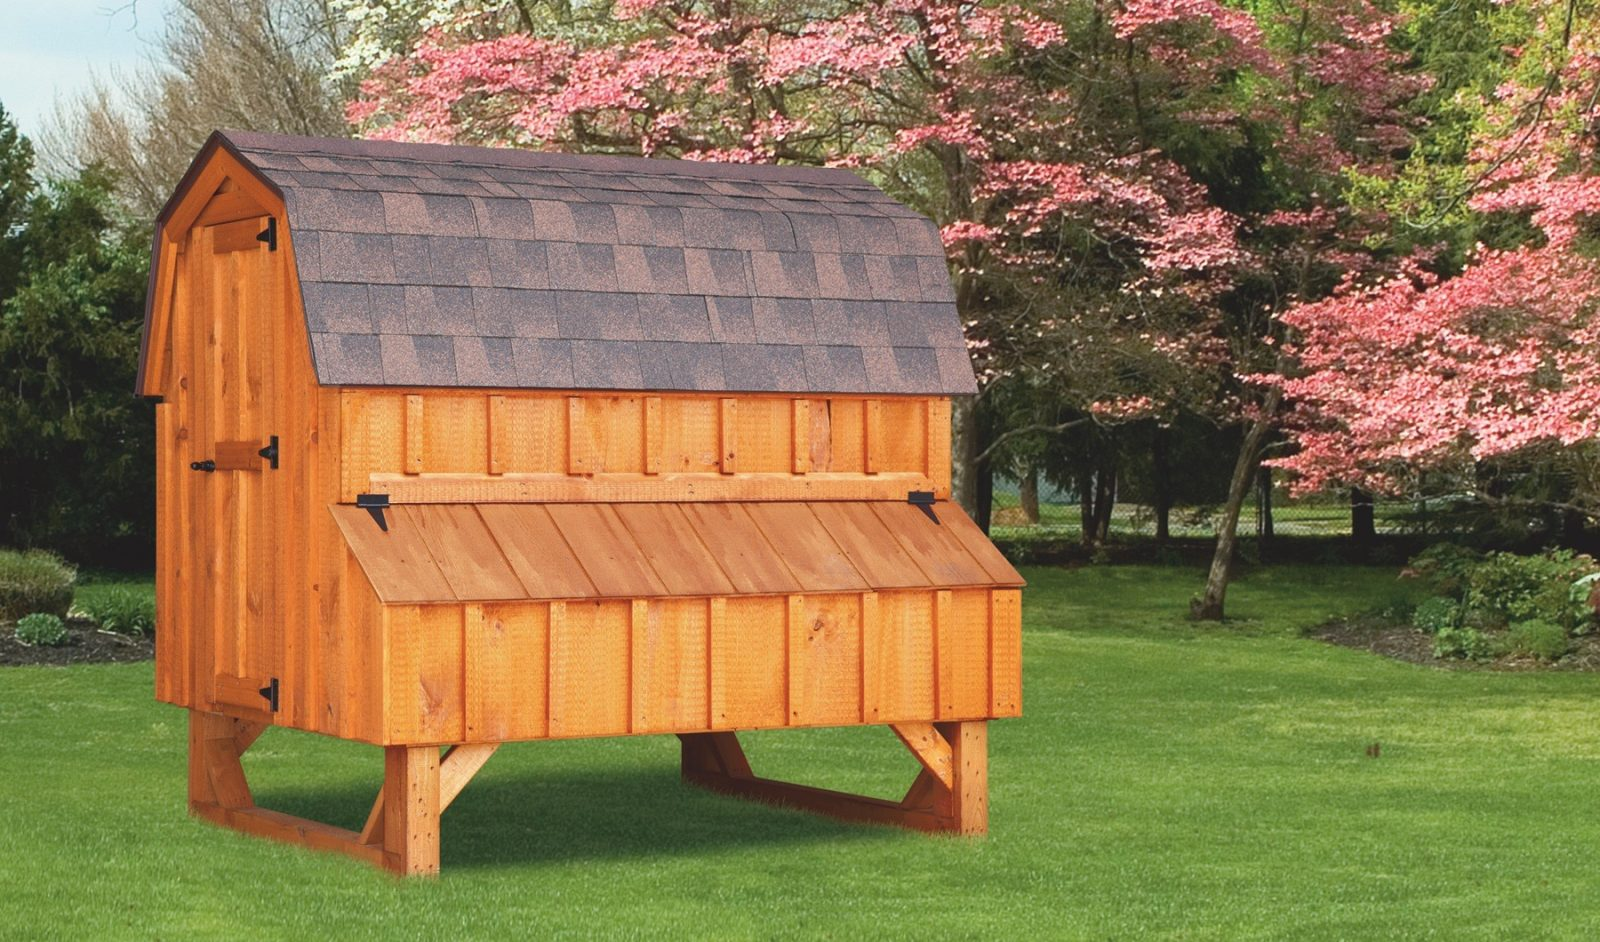 Barn Style Chicken Coops   Buy a Cute Coop for Your Chickens